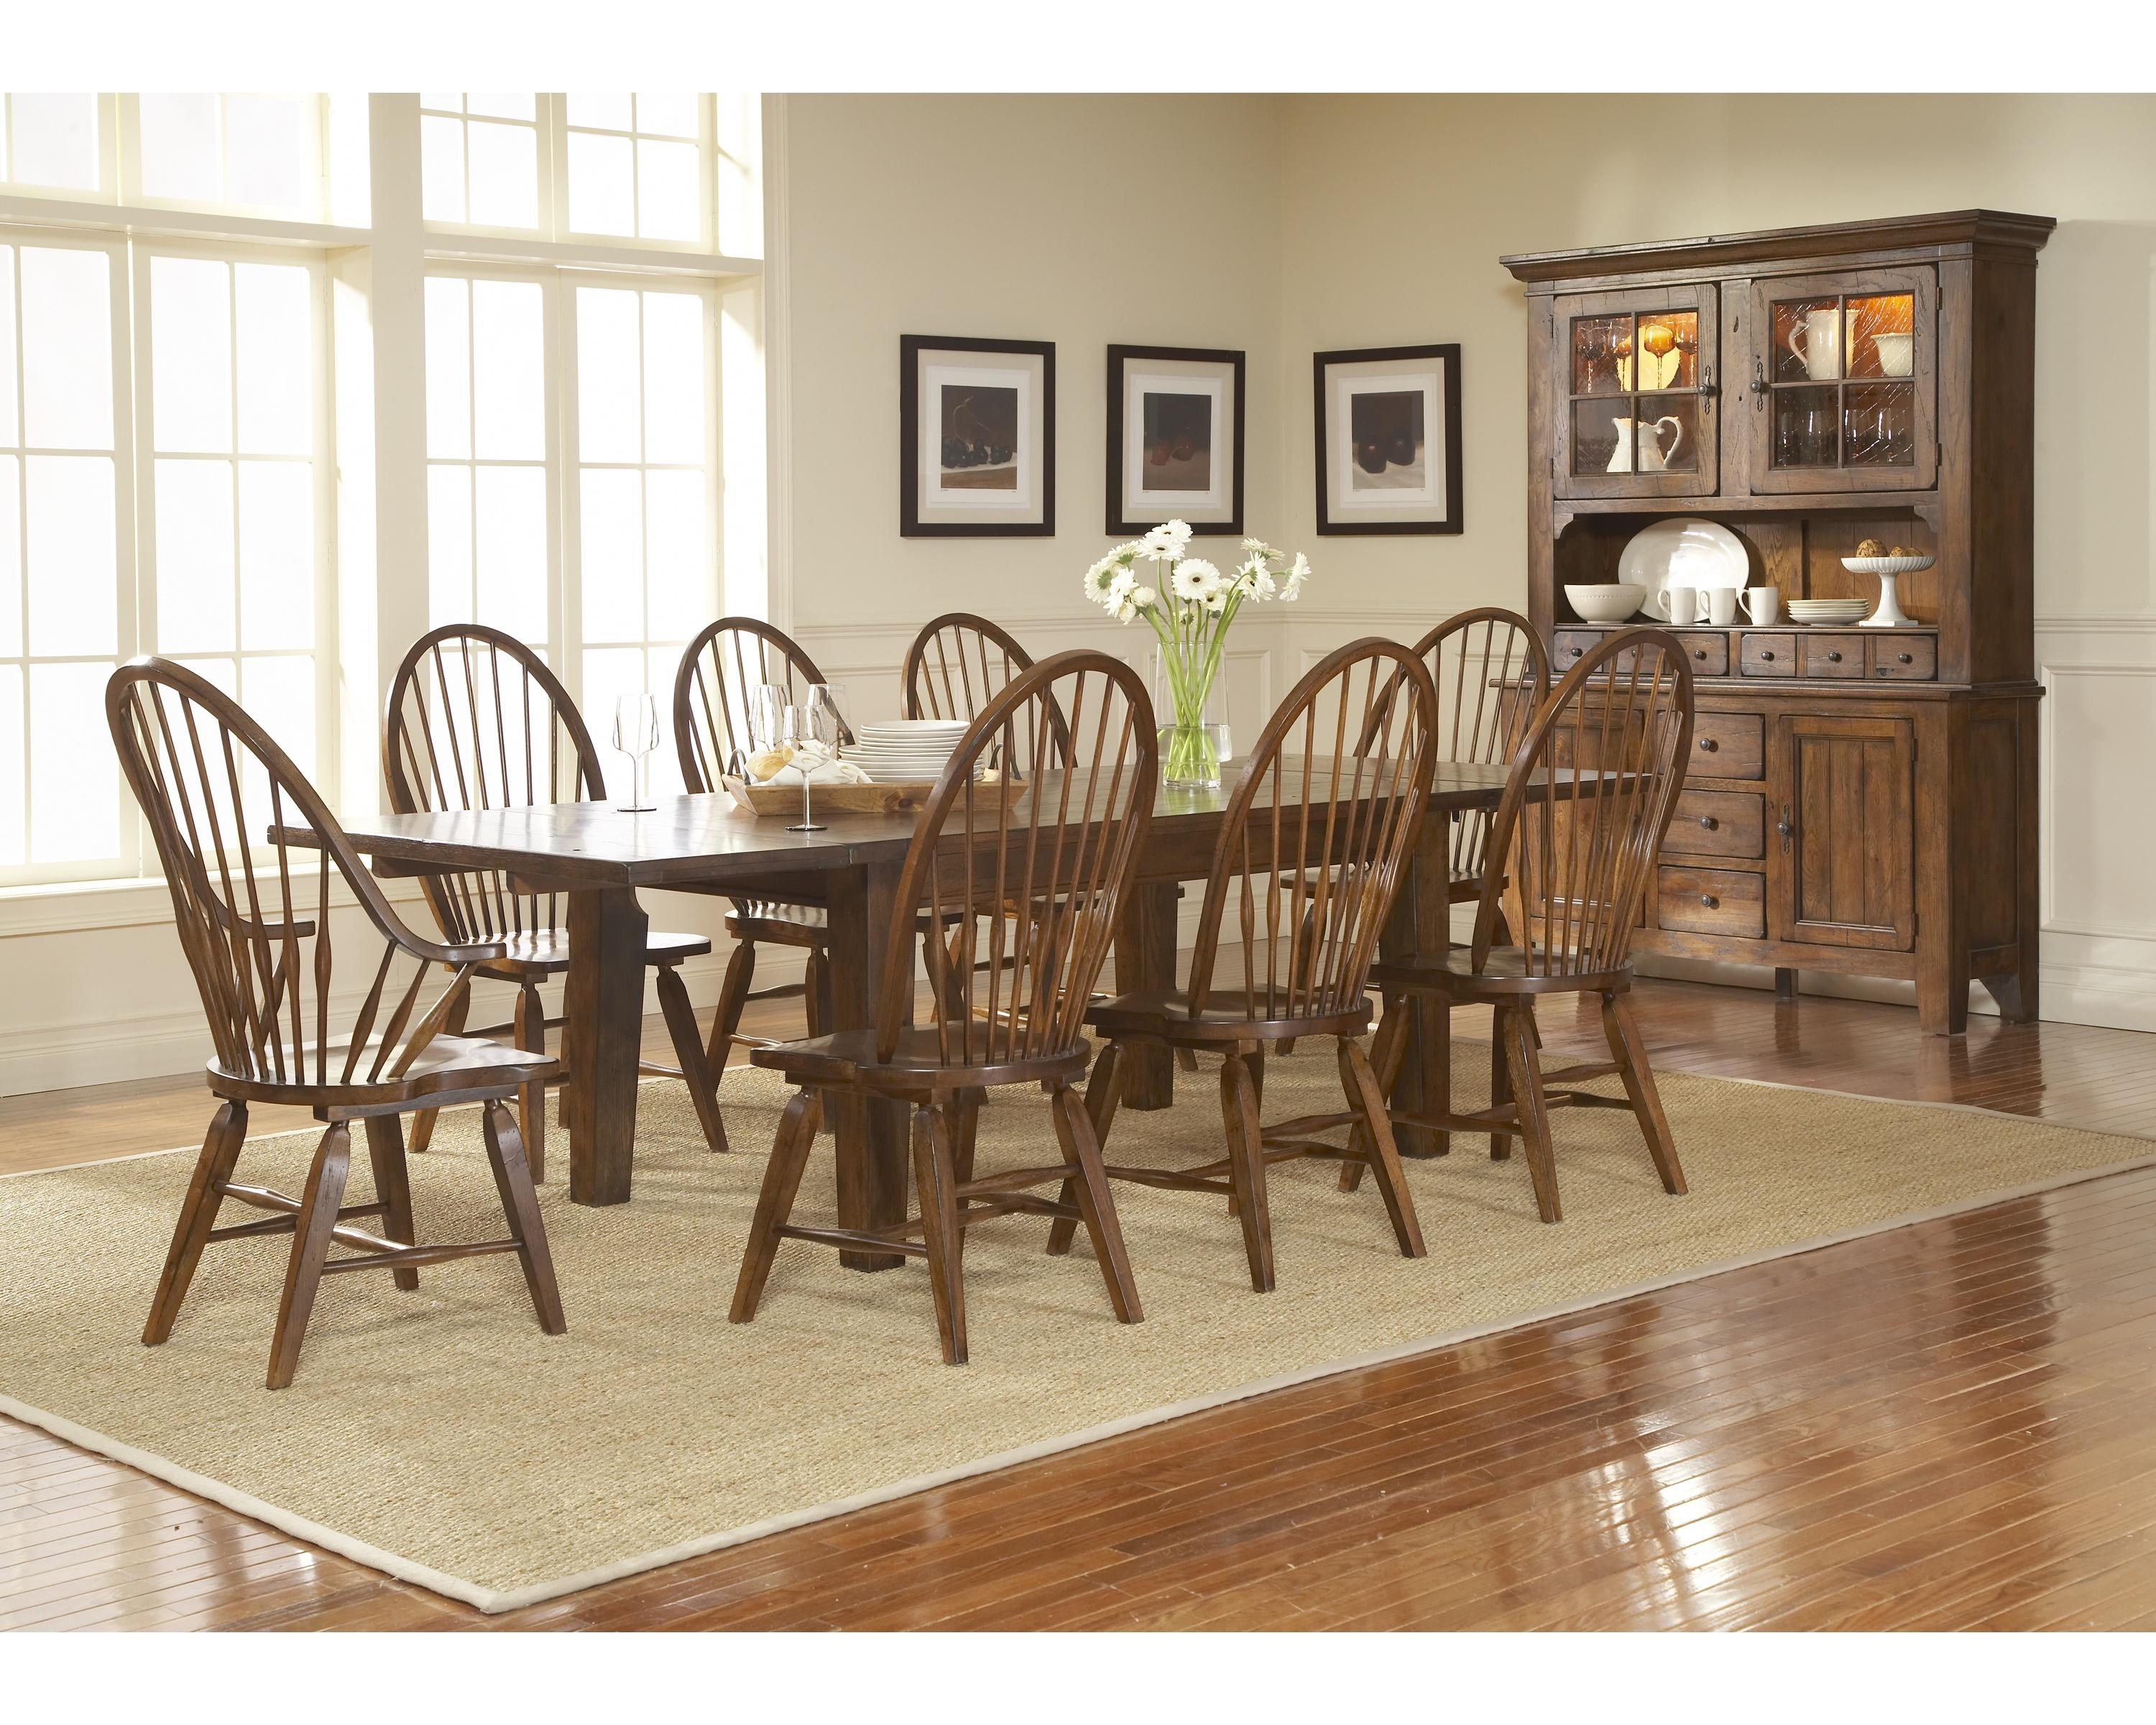 Broyhill furniture attic rustic 5399 42v leg dining table for Broyhill dining room furniture